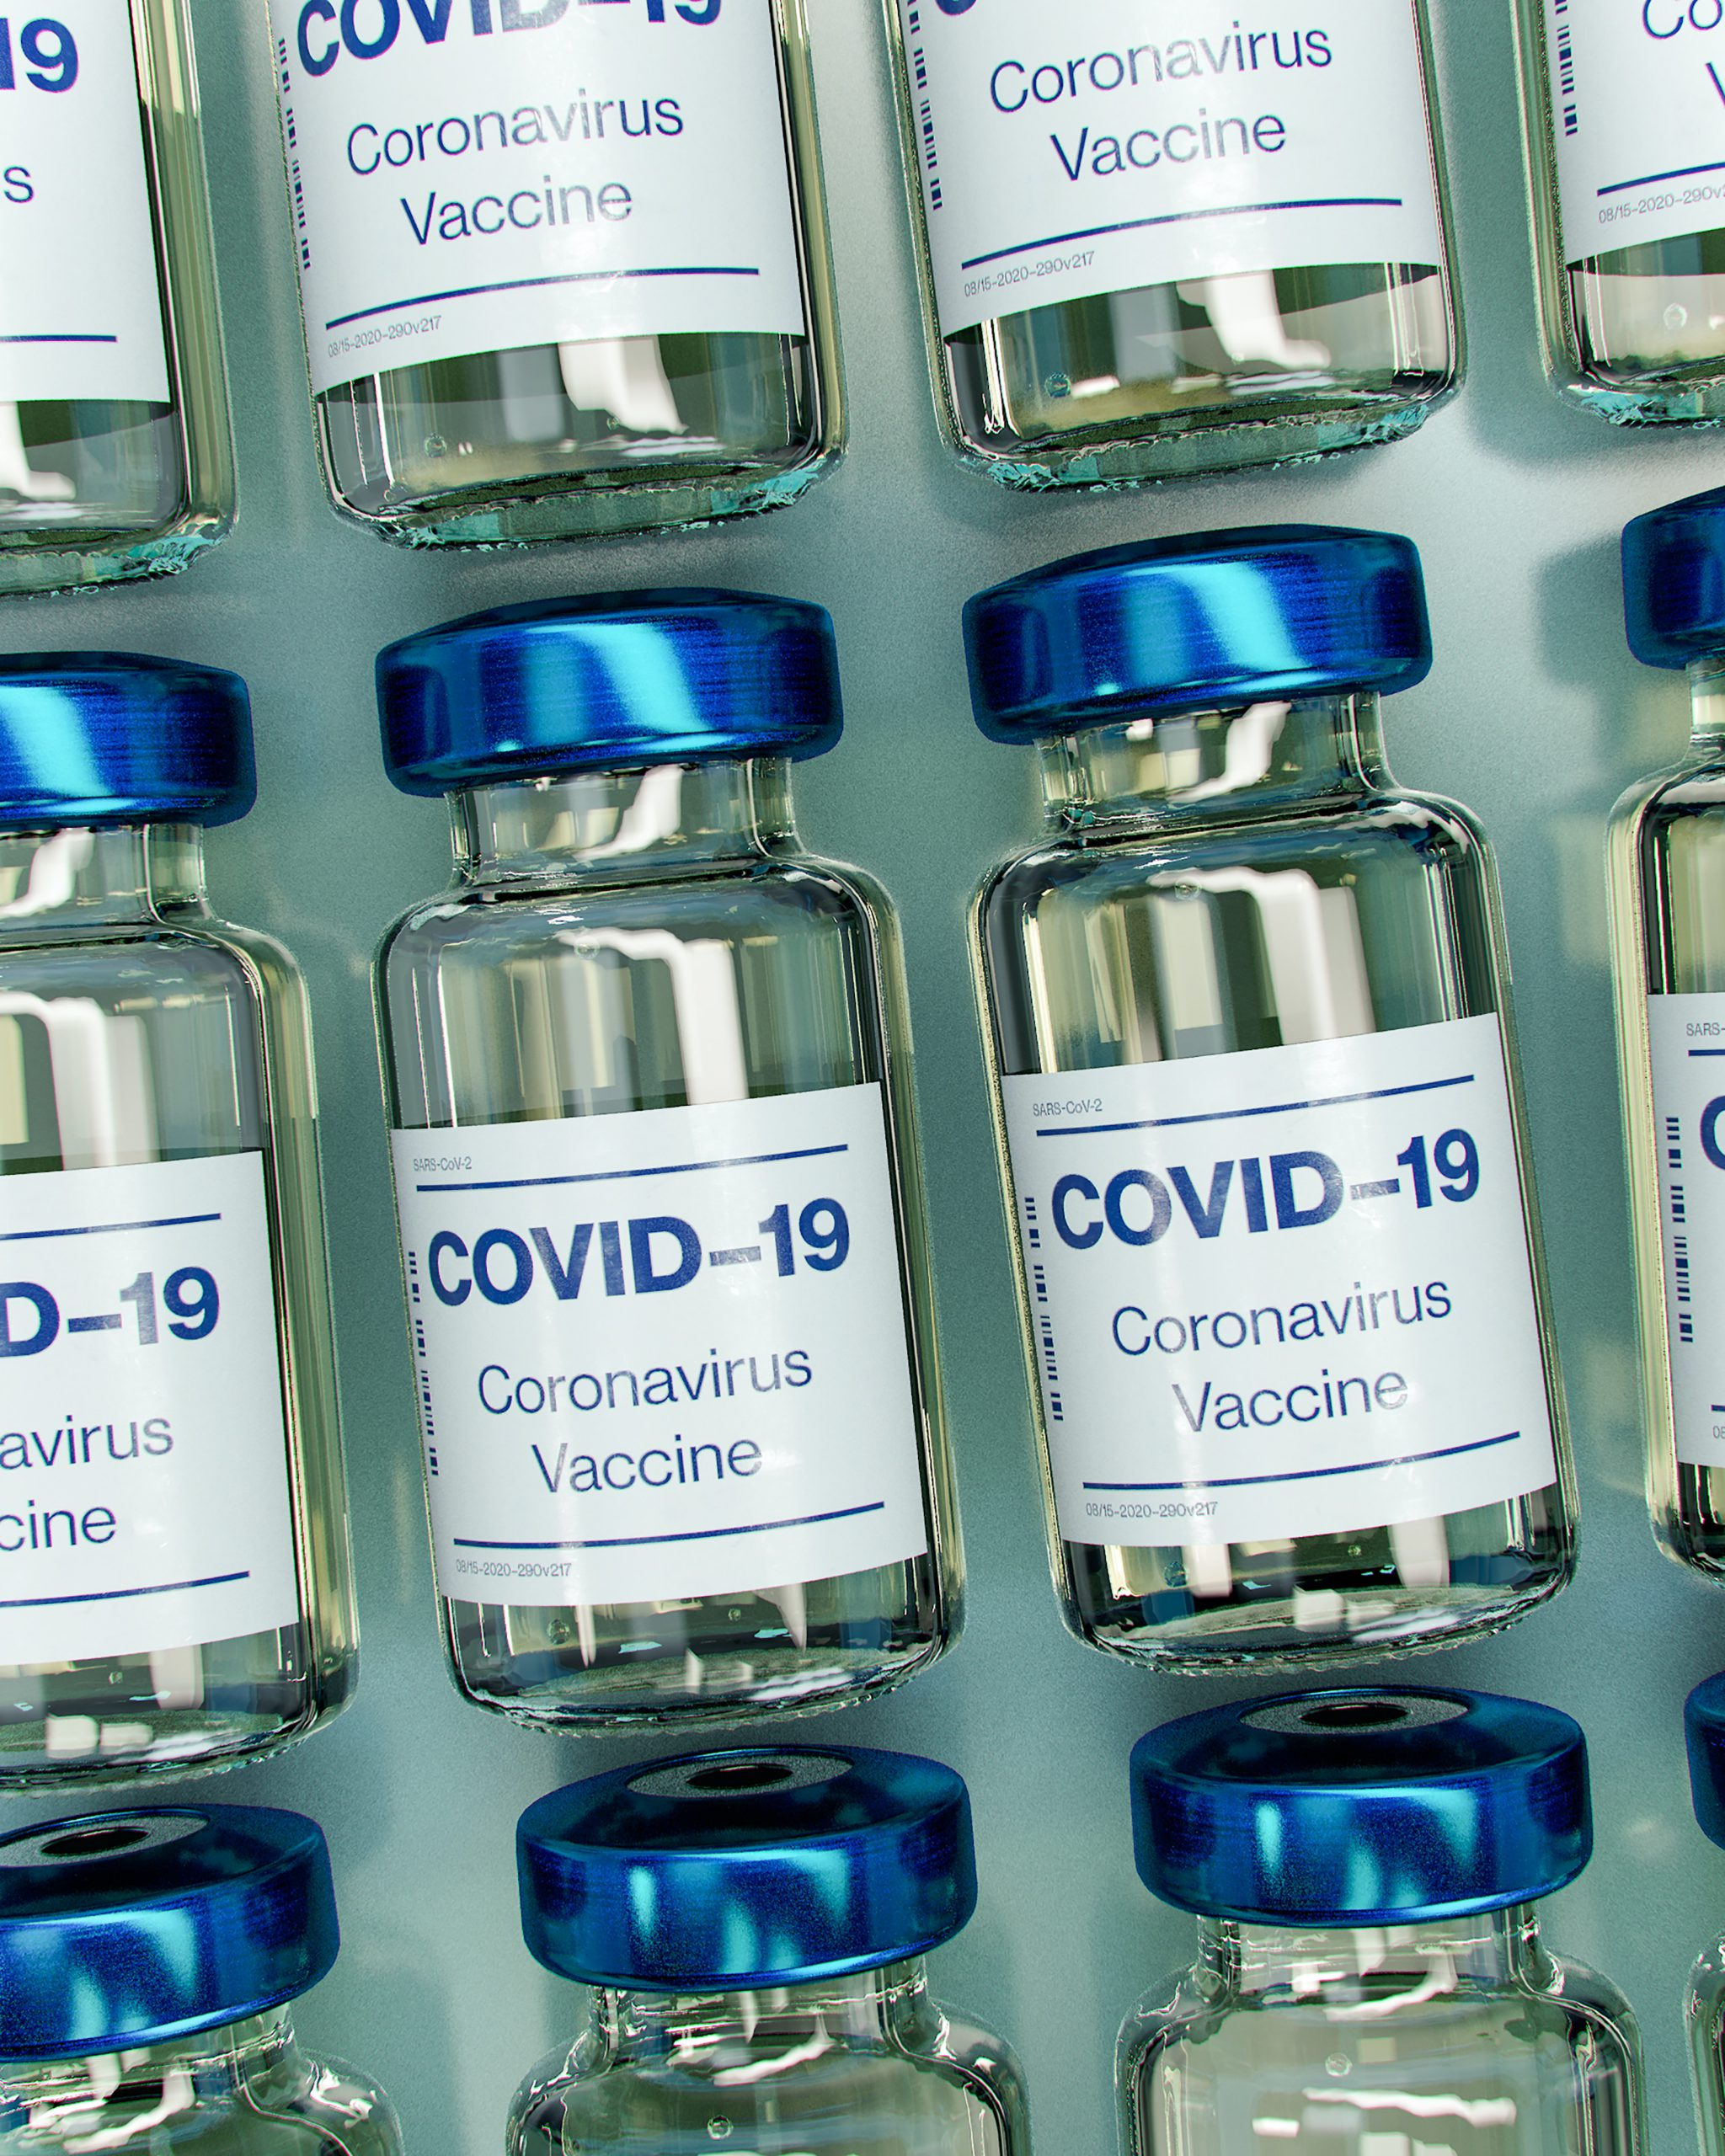 COVID-19 Market Update: Vaccine Progress and Re-evaluating Our Return to Normal